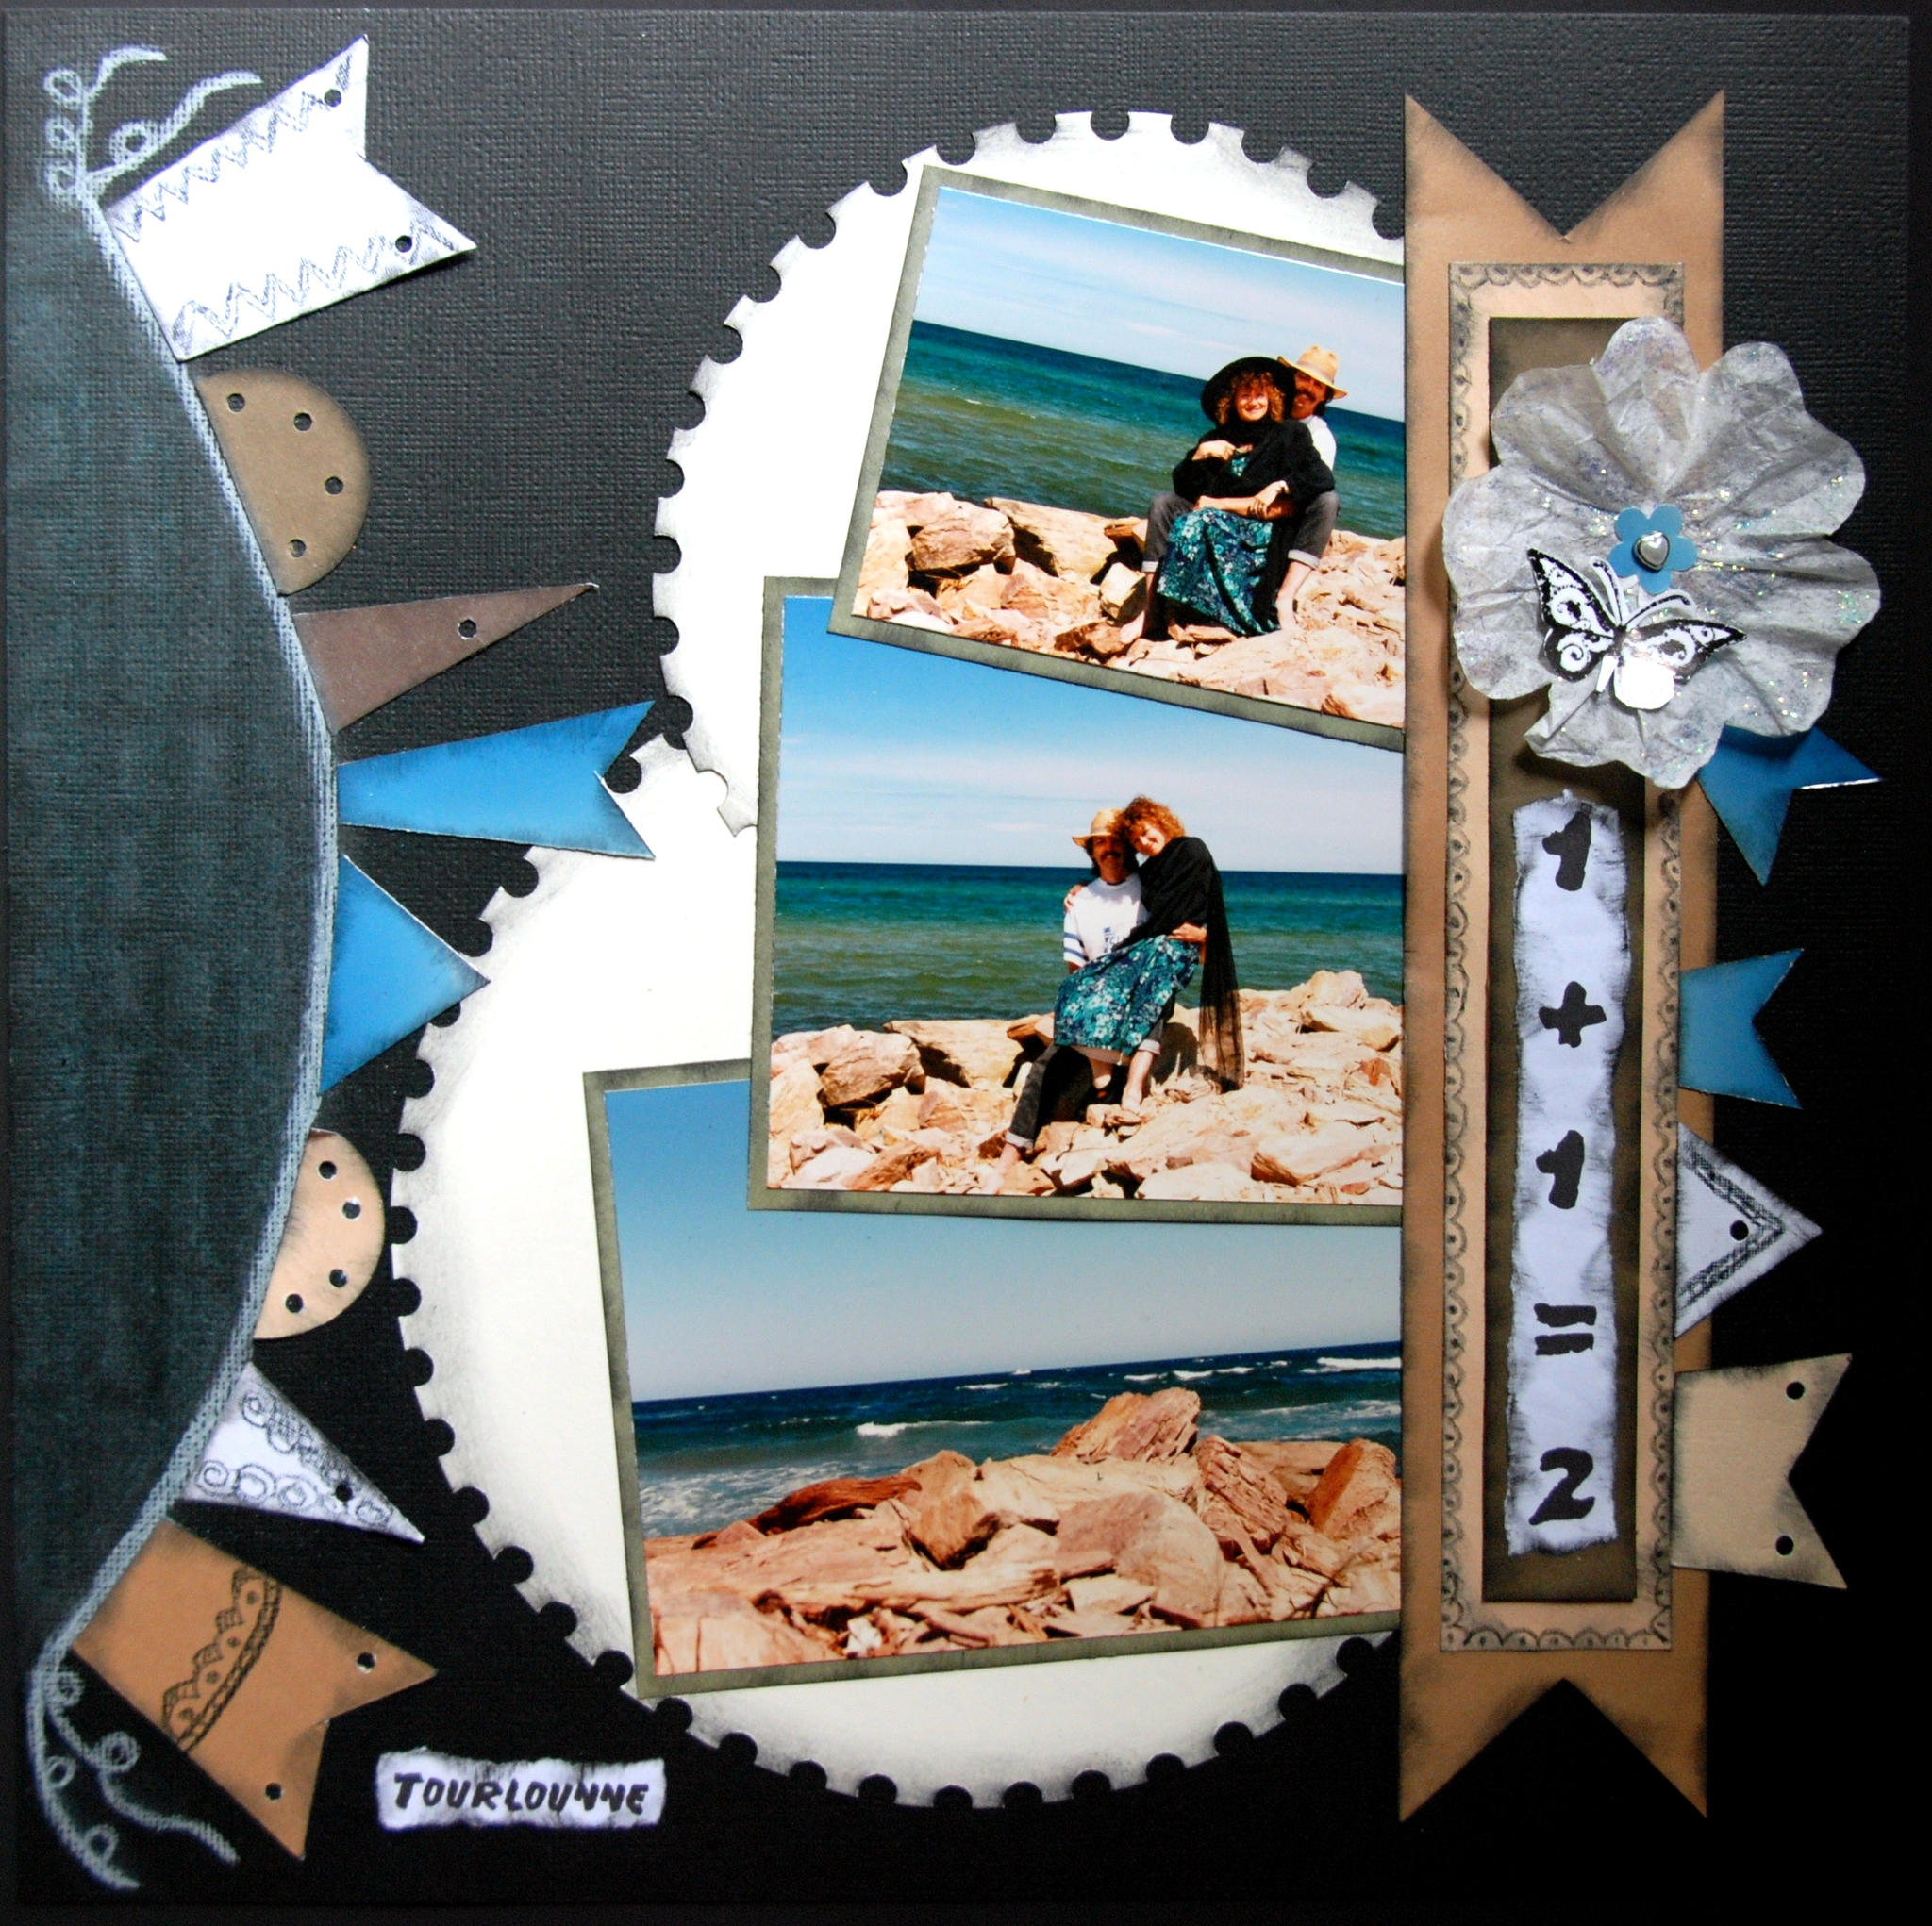 Point de croix. Scrapbooking. Crochet. Photos etc ... Chez novalee02  Le point